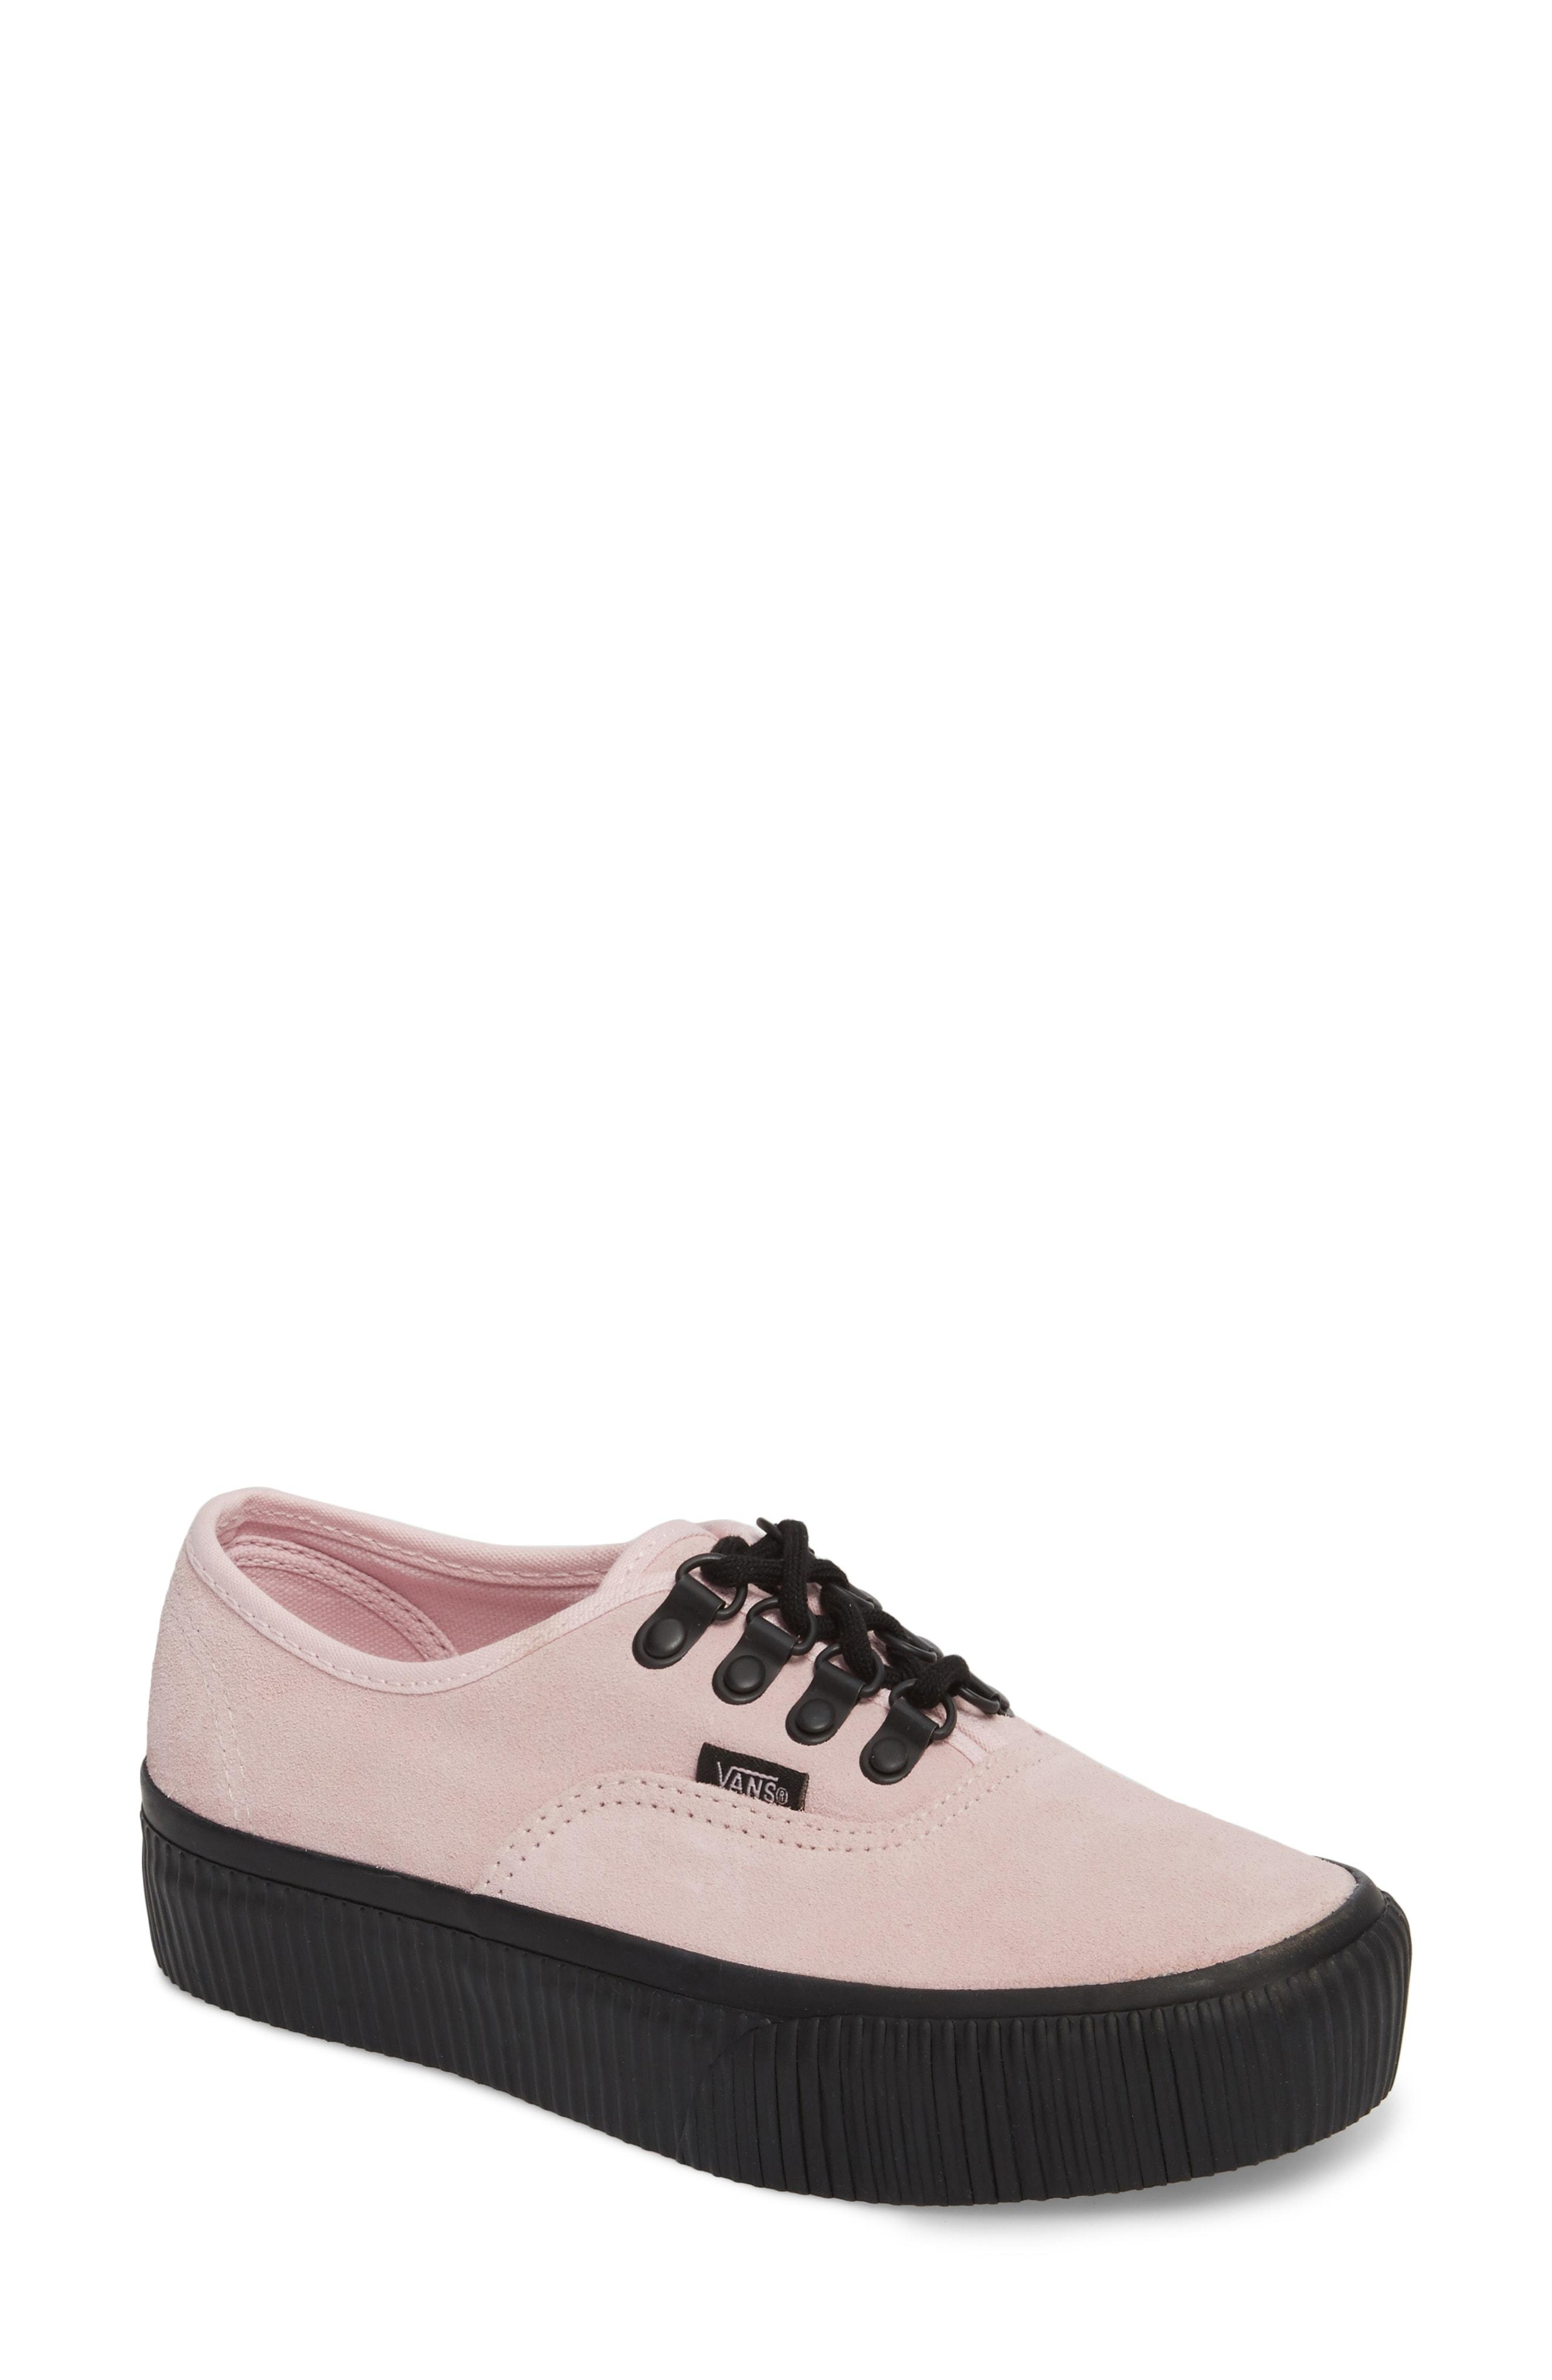 5579b6e7060761 Vans  Authentic  Platform Sneaker In Chalk Pink  Black